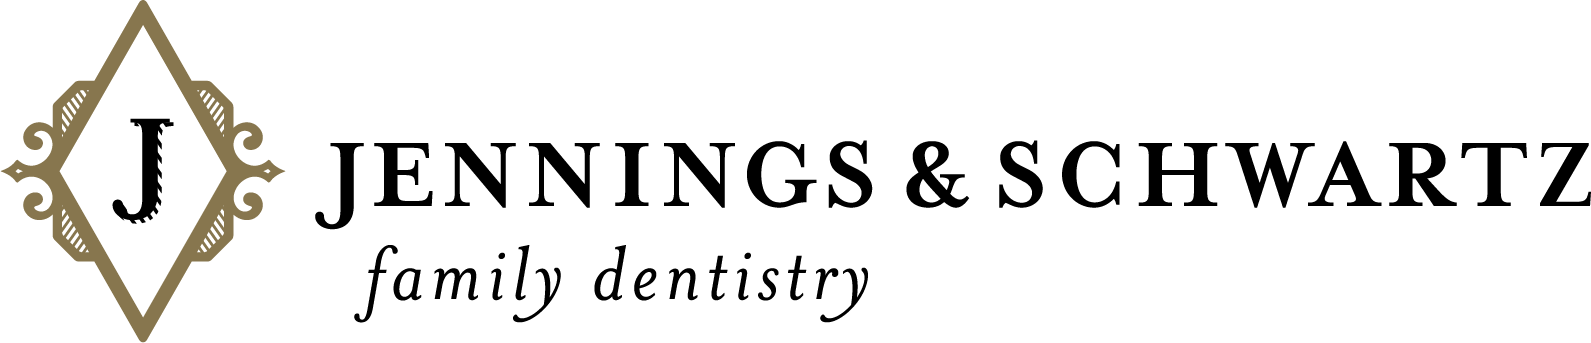 Jennings & Schwartz Family Dentistry